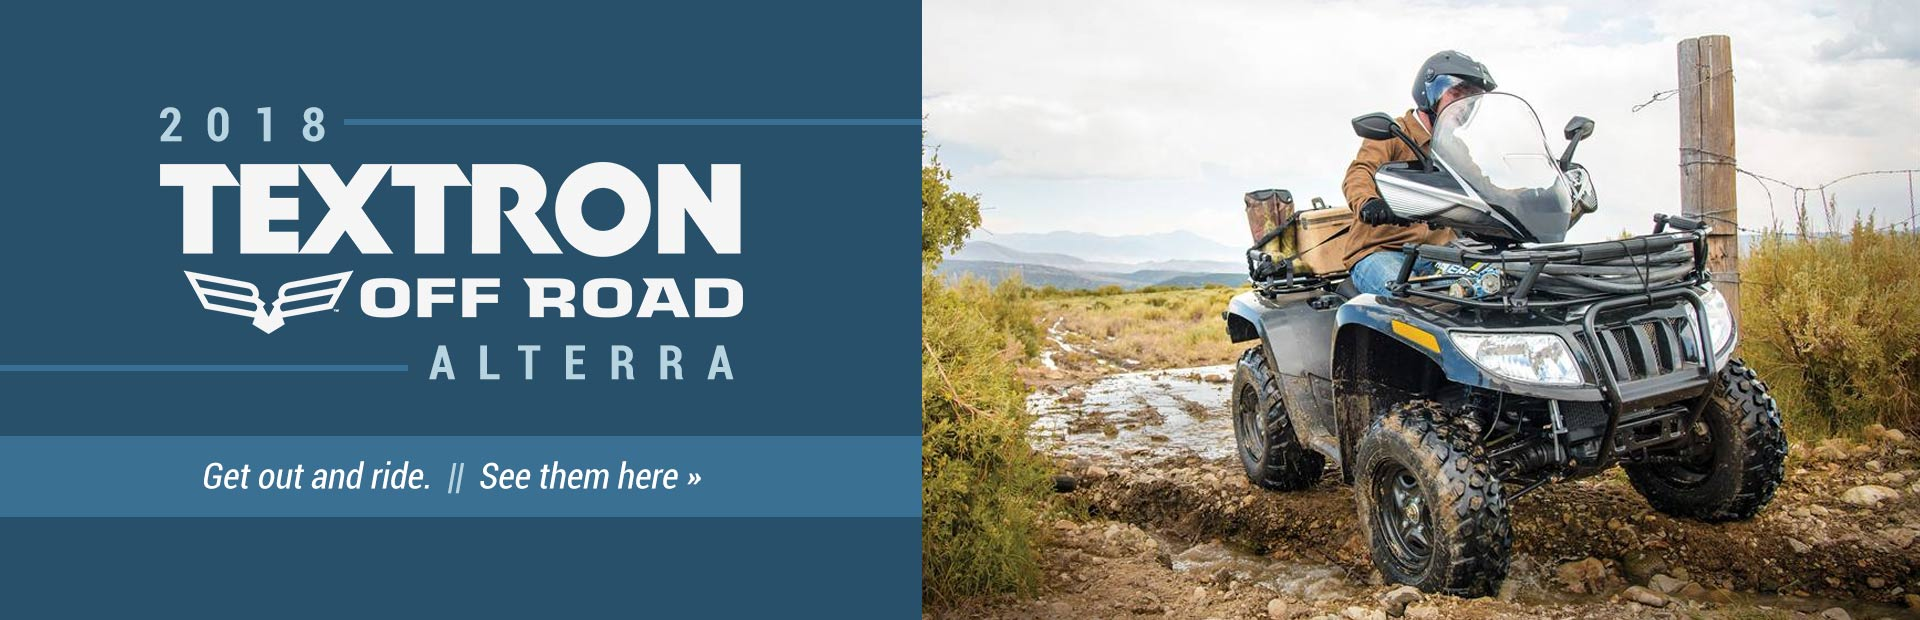 Get out and ride with the 2018 Textron Off Road Alterra! Click here to view the models.